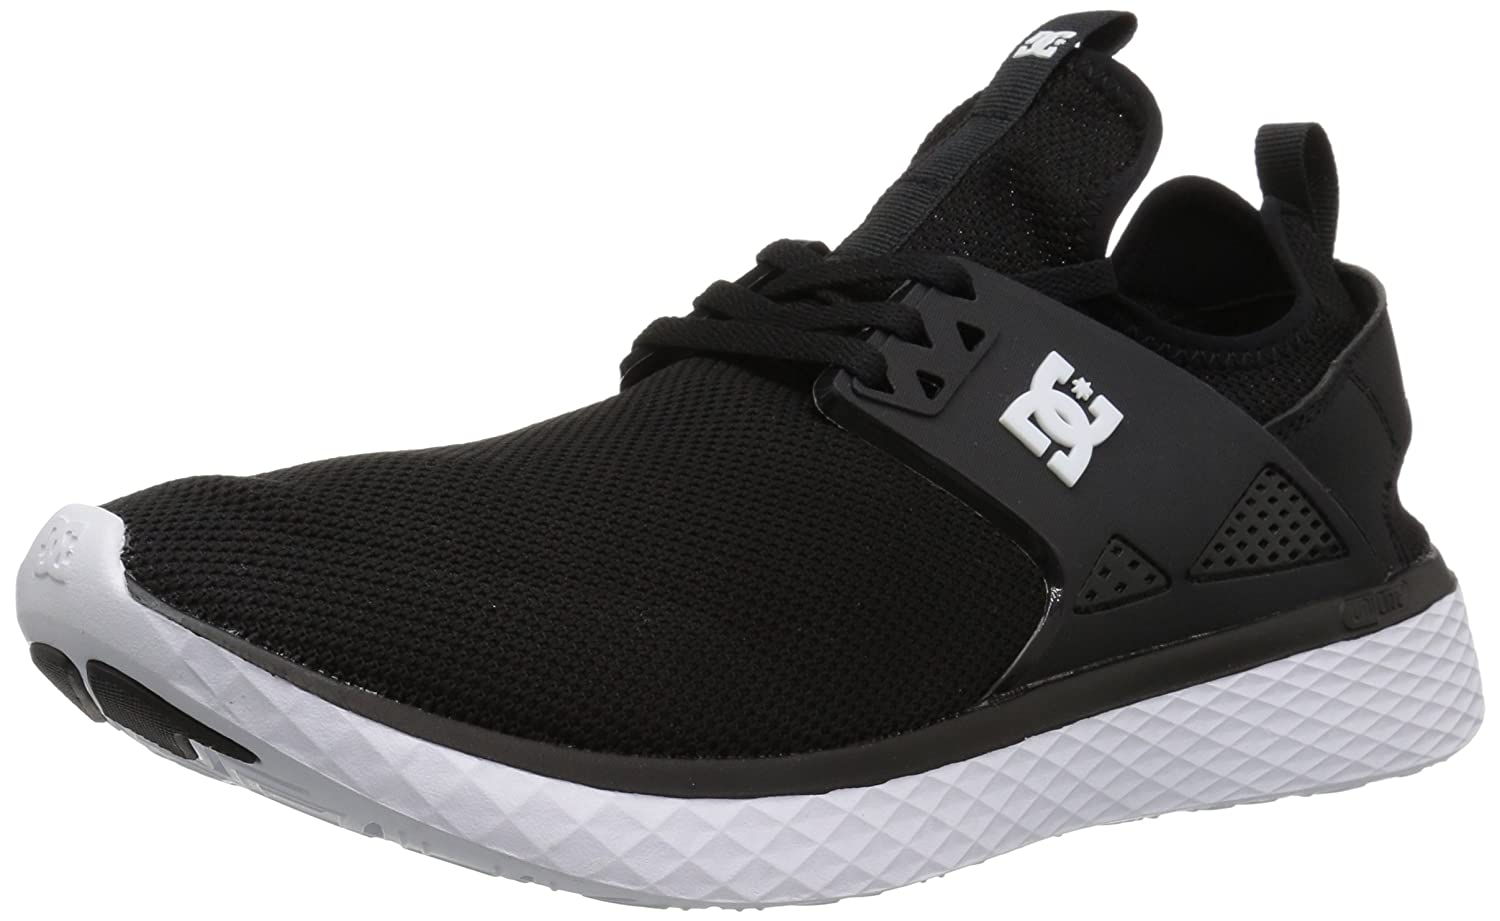 Man/Woman DC Men's Meridian Skate Shoe, Black Black Black White, D(M) US High-quality discount Quality and consumer first VW2942 85c45c